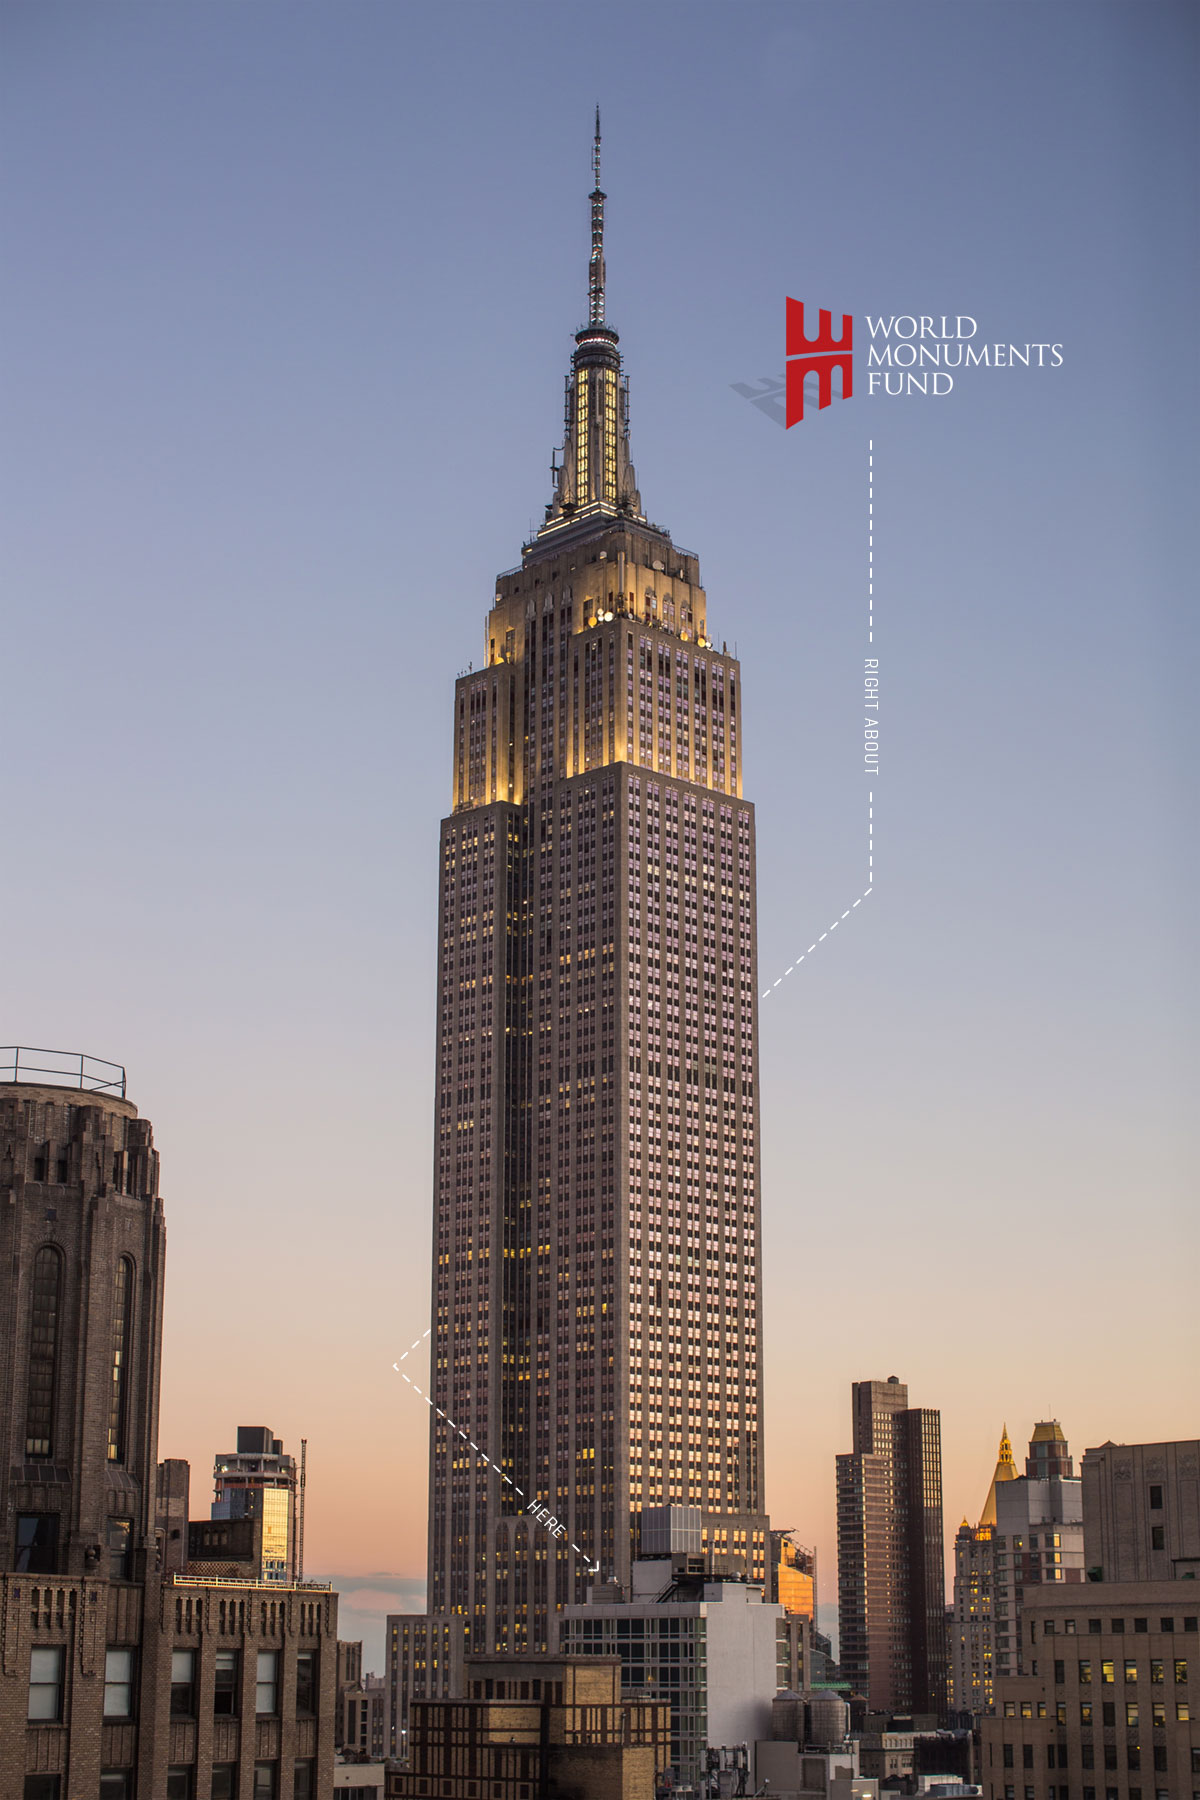 Image of Empire State Building, WMF headquarters